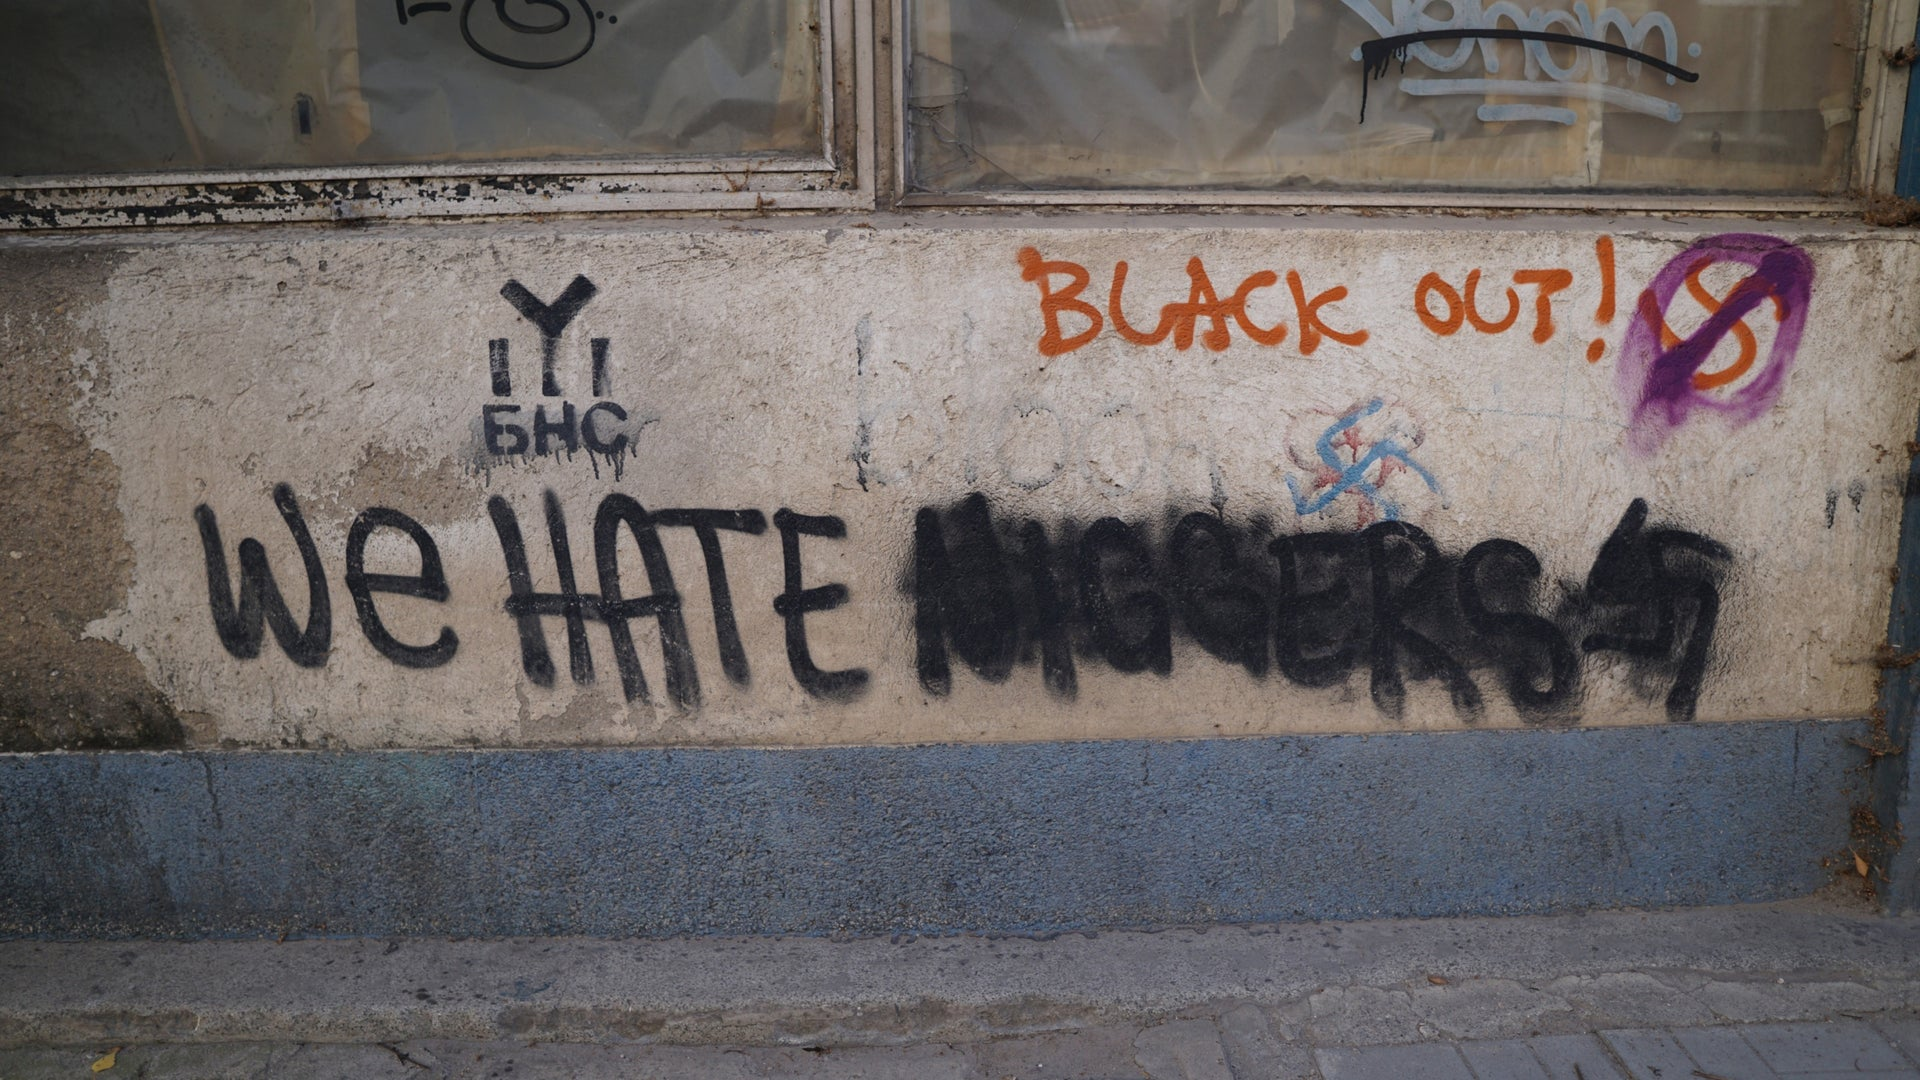 Racist graffiti on a wall in Sofia. The original graffiti has been there since at least June 2015.